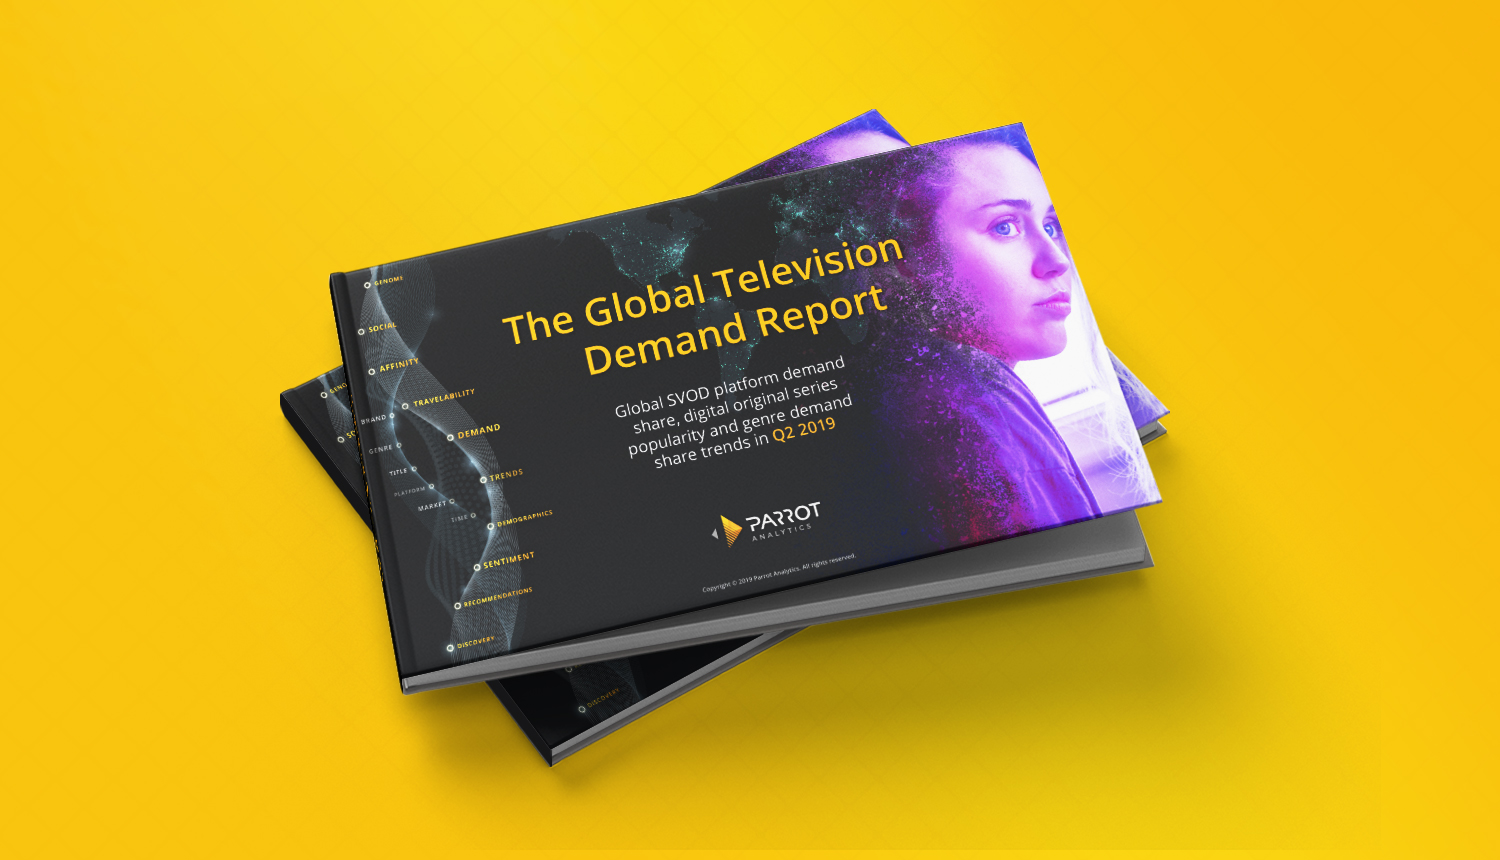 The Global Television Demand Report: Q2 2019